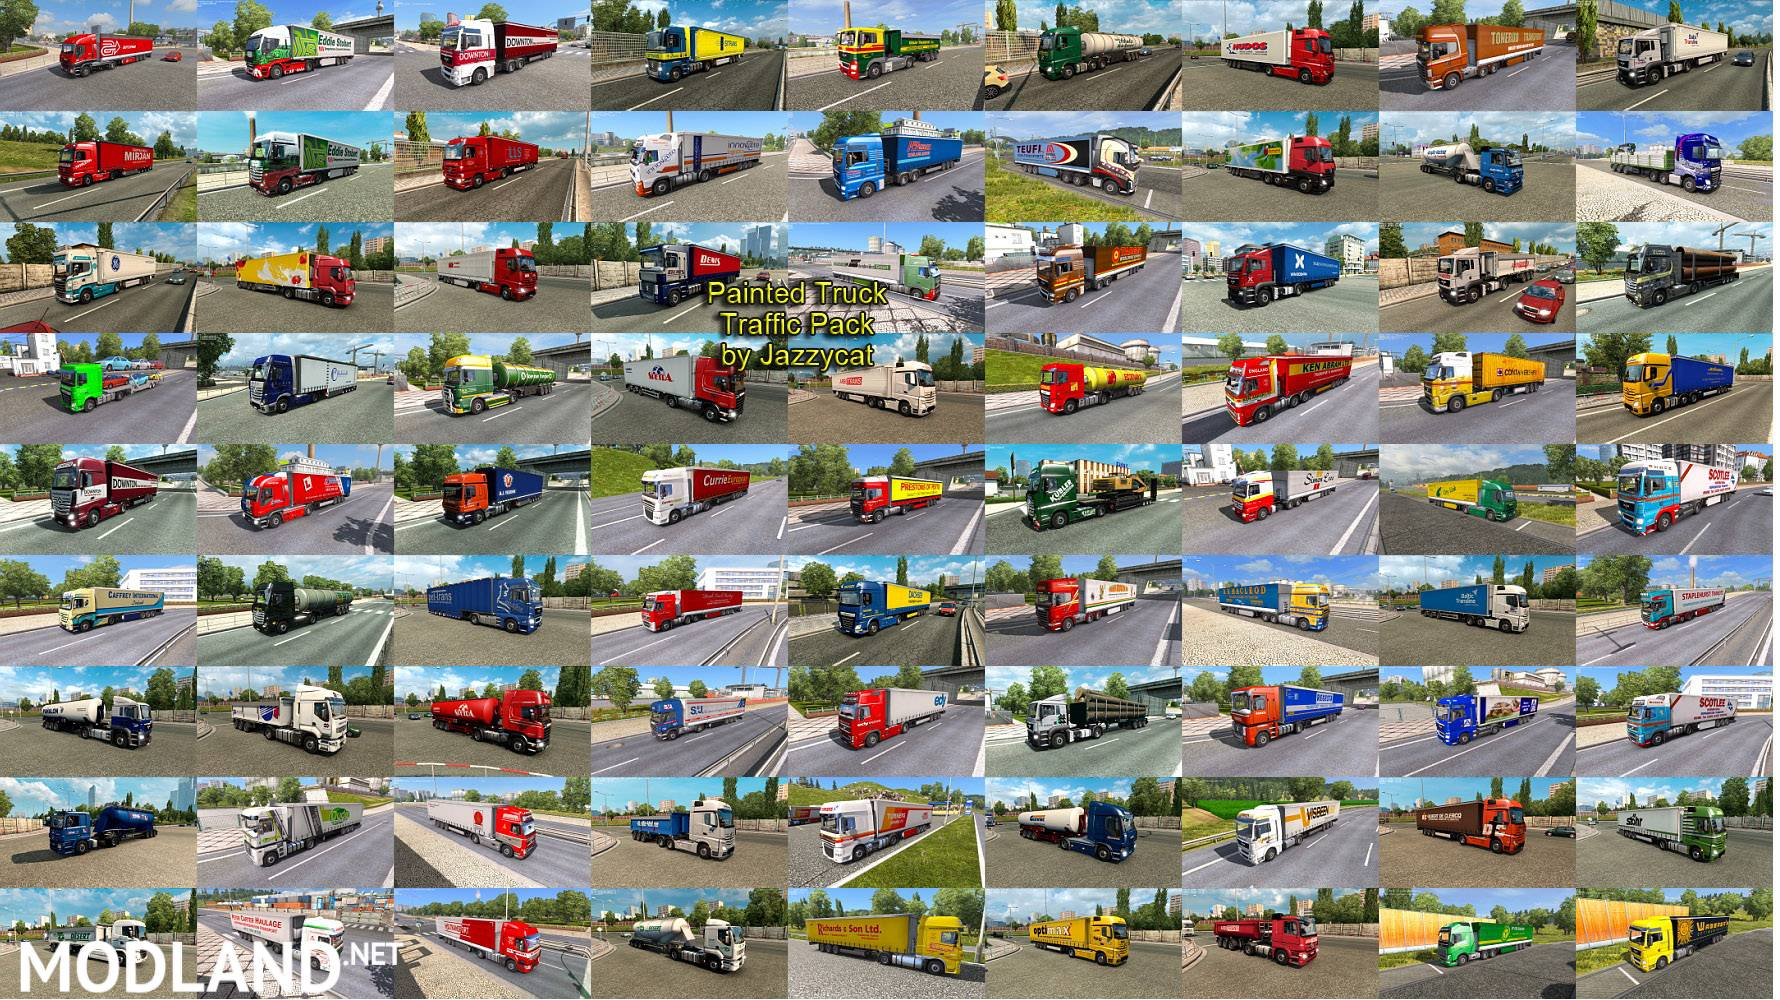 Painted Truck Traffic Pack by Jazzycat v 8 0 mod for ETS 2